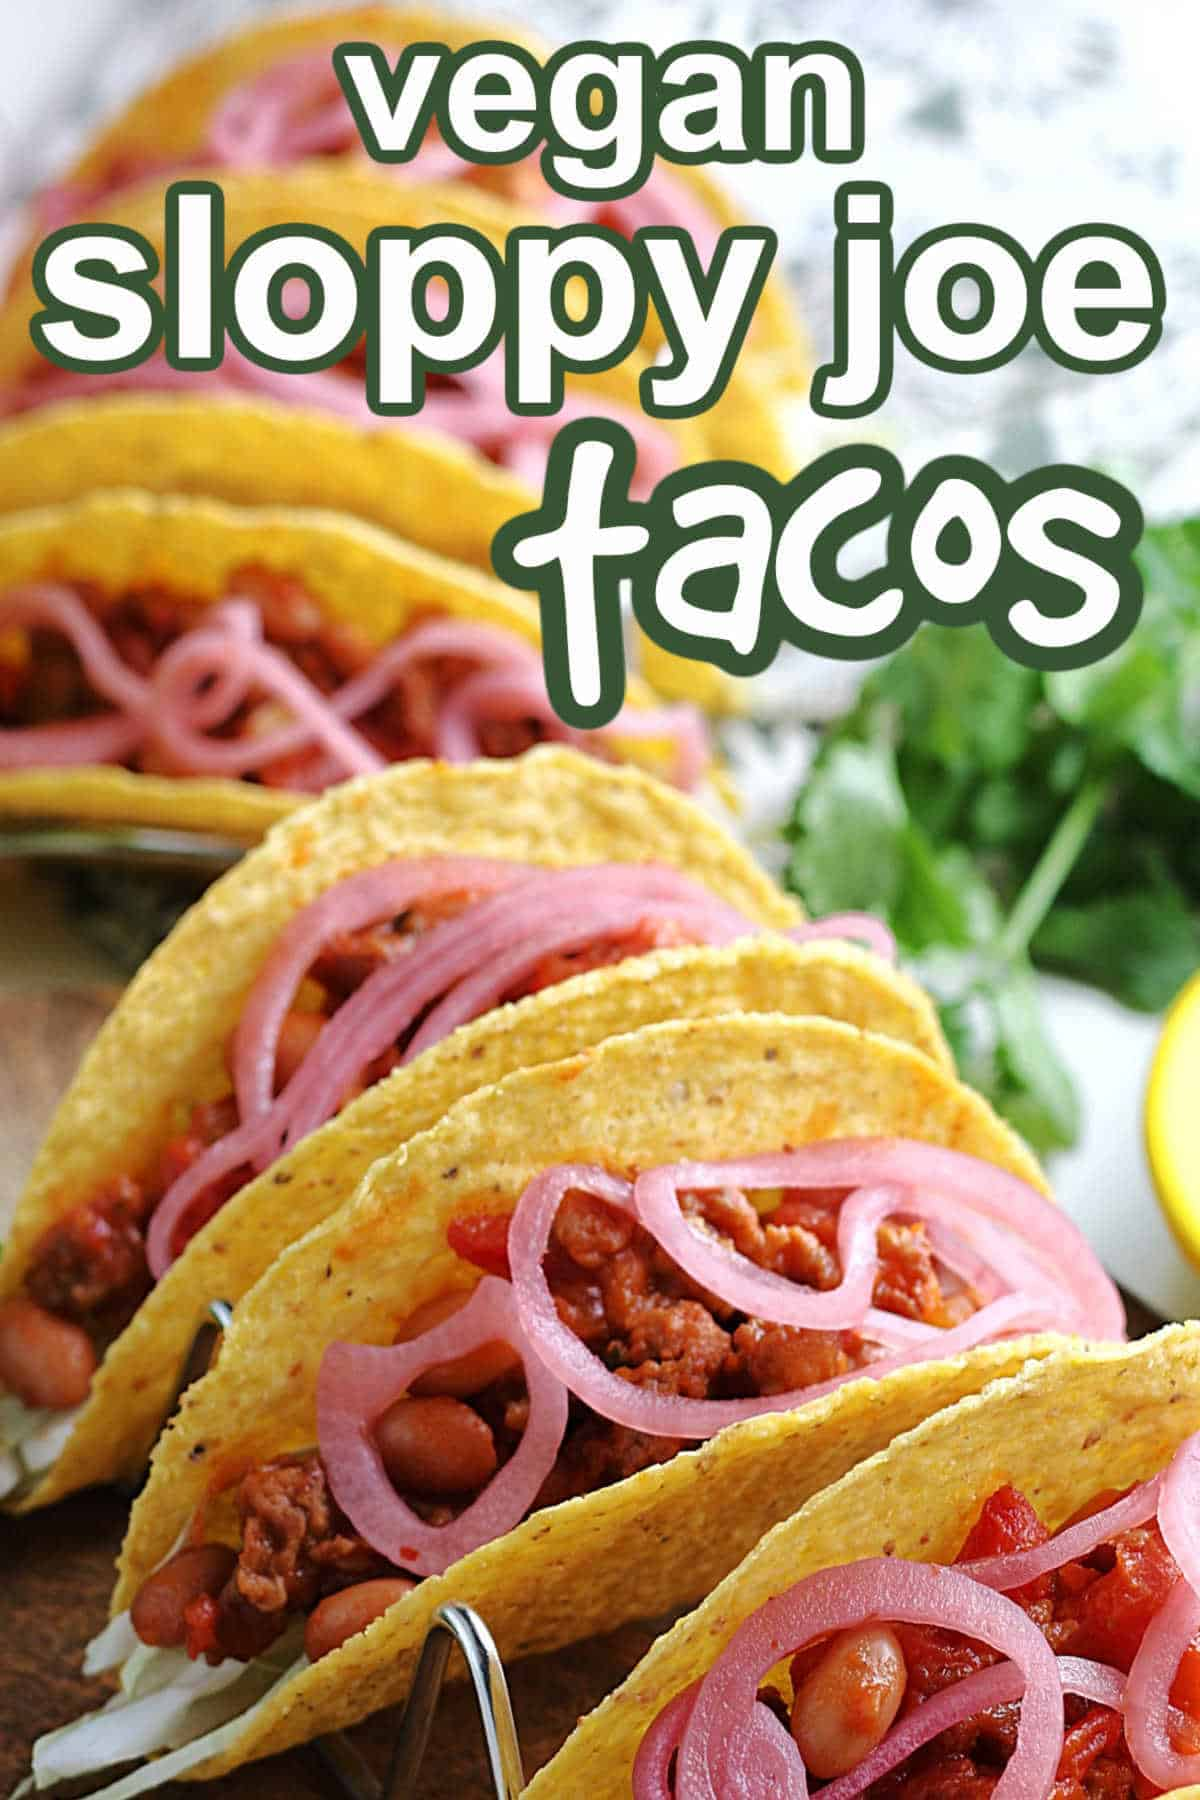 Lined up and filled sloppy joe tacos in a curve and up close.